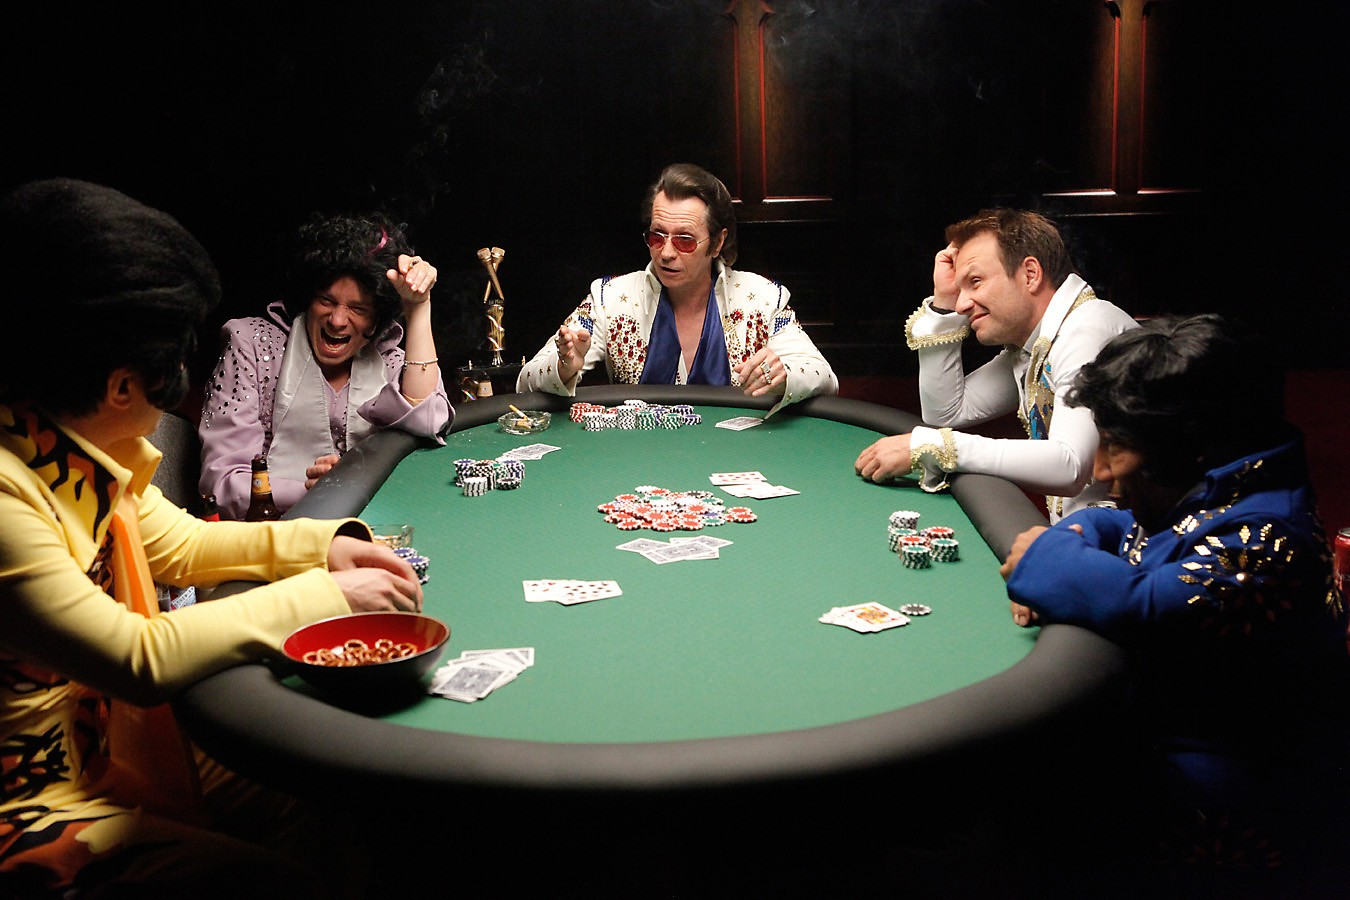 Casino holdem poker plus